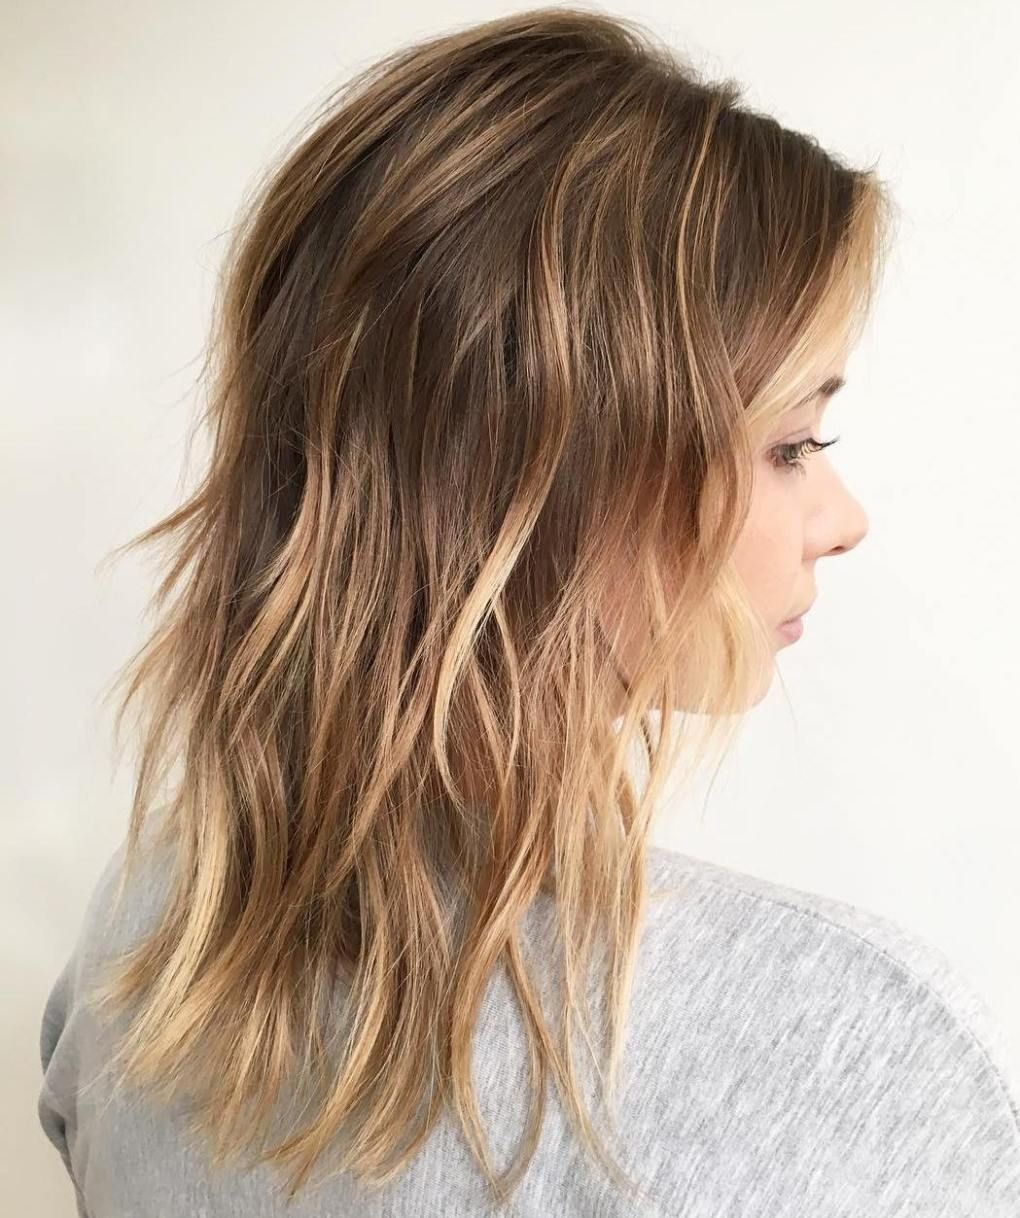 50 Right Hairstyles For Thin Hair To Opt For In 2020 Hair Adviser In 2020 Thin Hair Haircuts Hairstyles For Thin Hair Thin Fine Hair